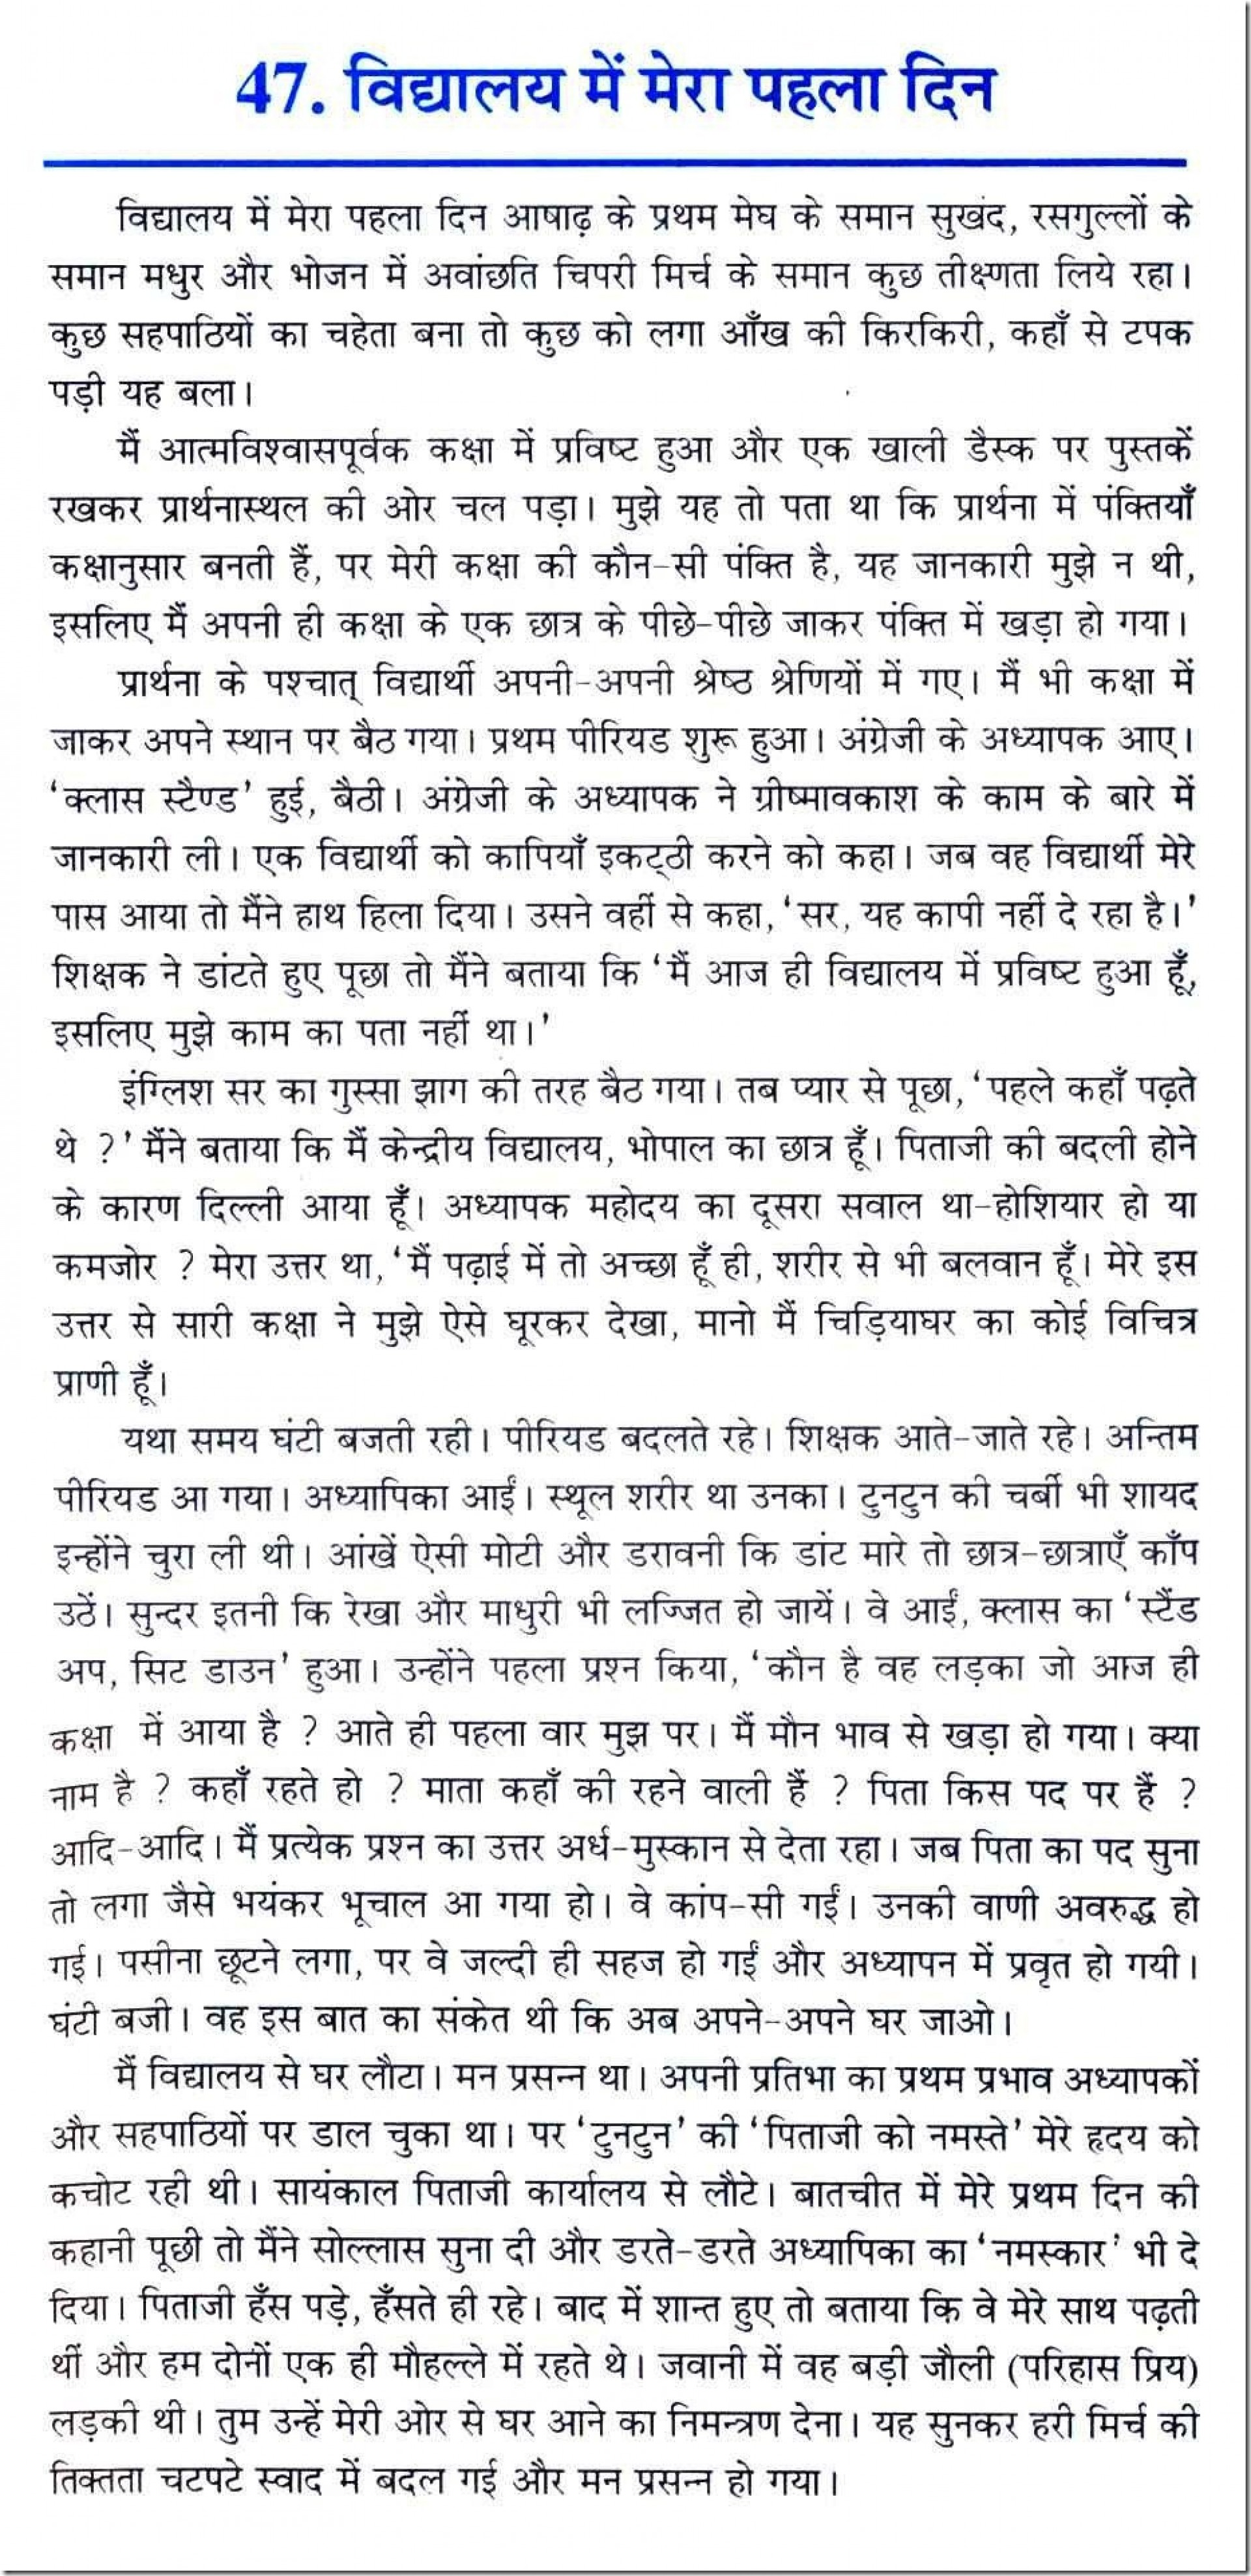 020 0020047 Thumb Short Essay On Leadership Awesome About Experience Transformational In Hindi 1920